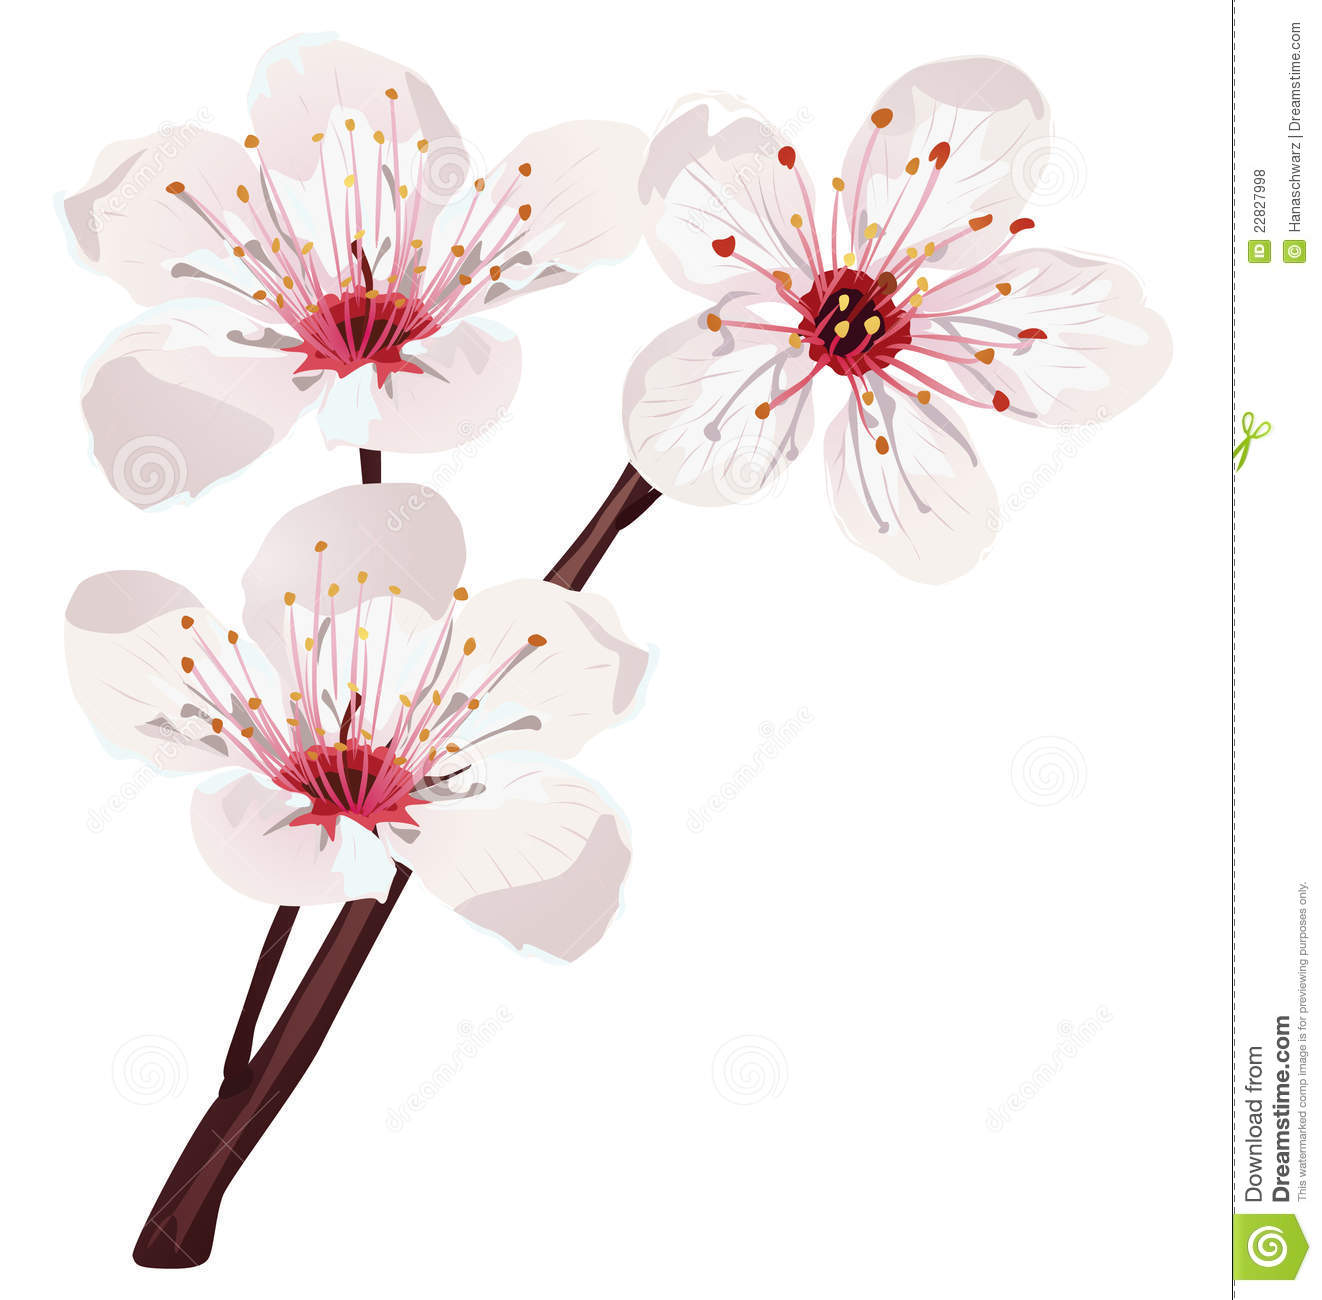 Download free cherry blossom clipart.